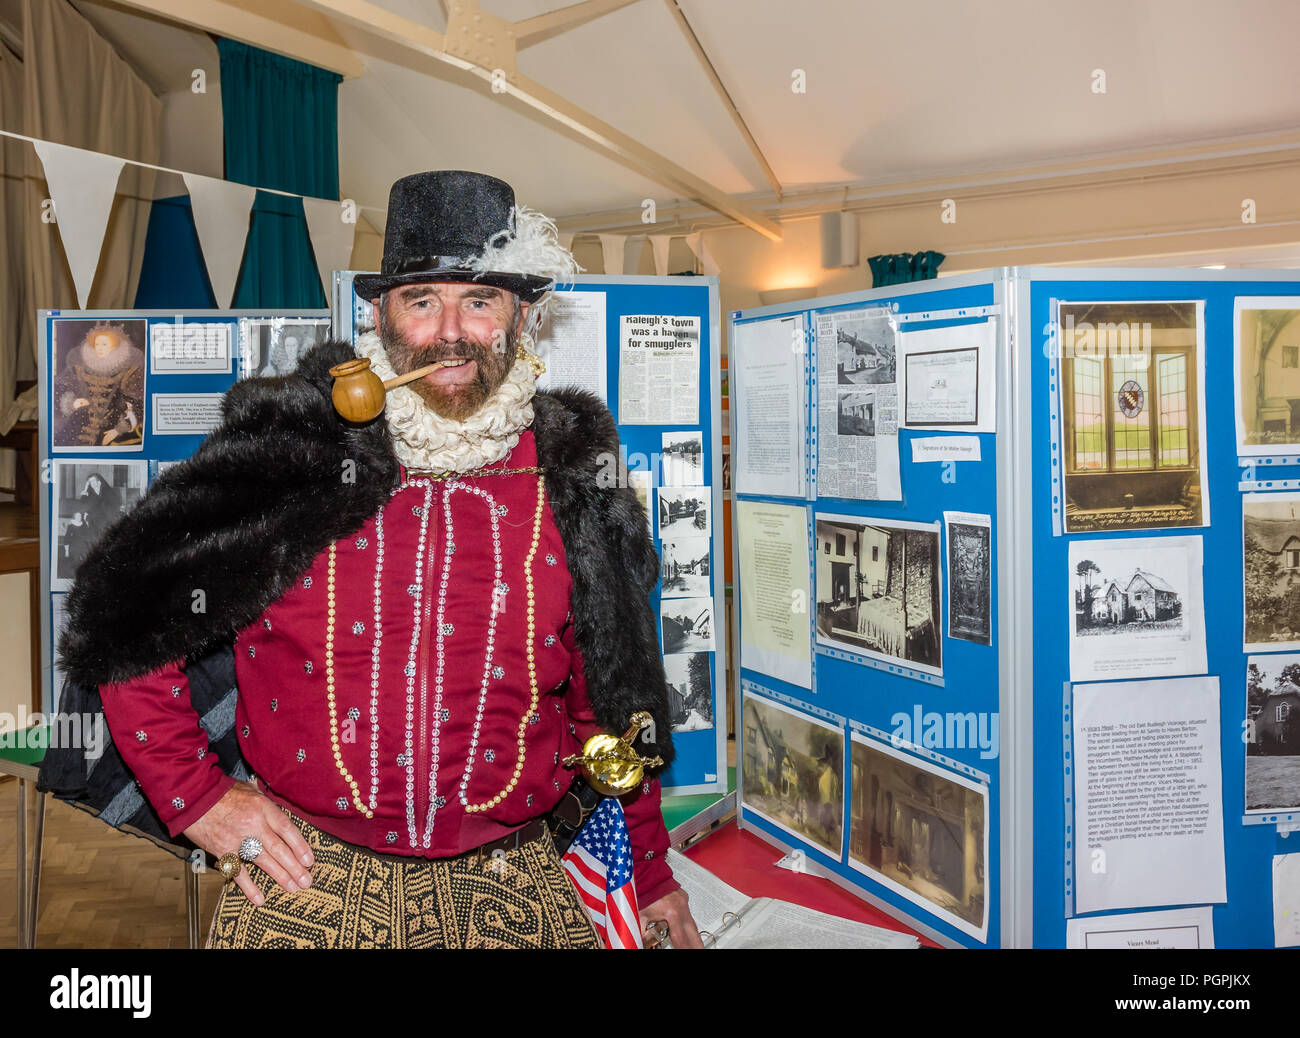 East Budleigh, England.27th August,2018. The Village 'Celebrates the Life of Sir Walter Raleigh' with a street Party. Credit: Peter Bowler/Alamy Live News. - Stock Image